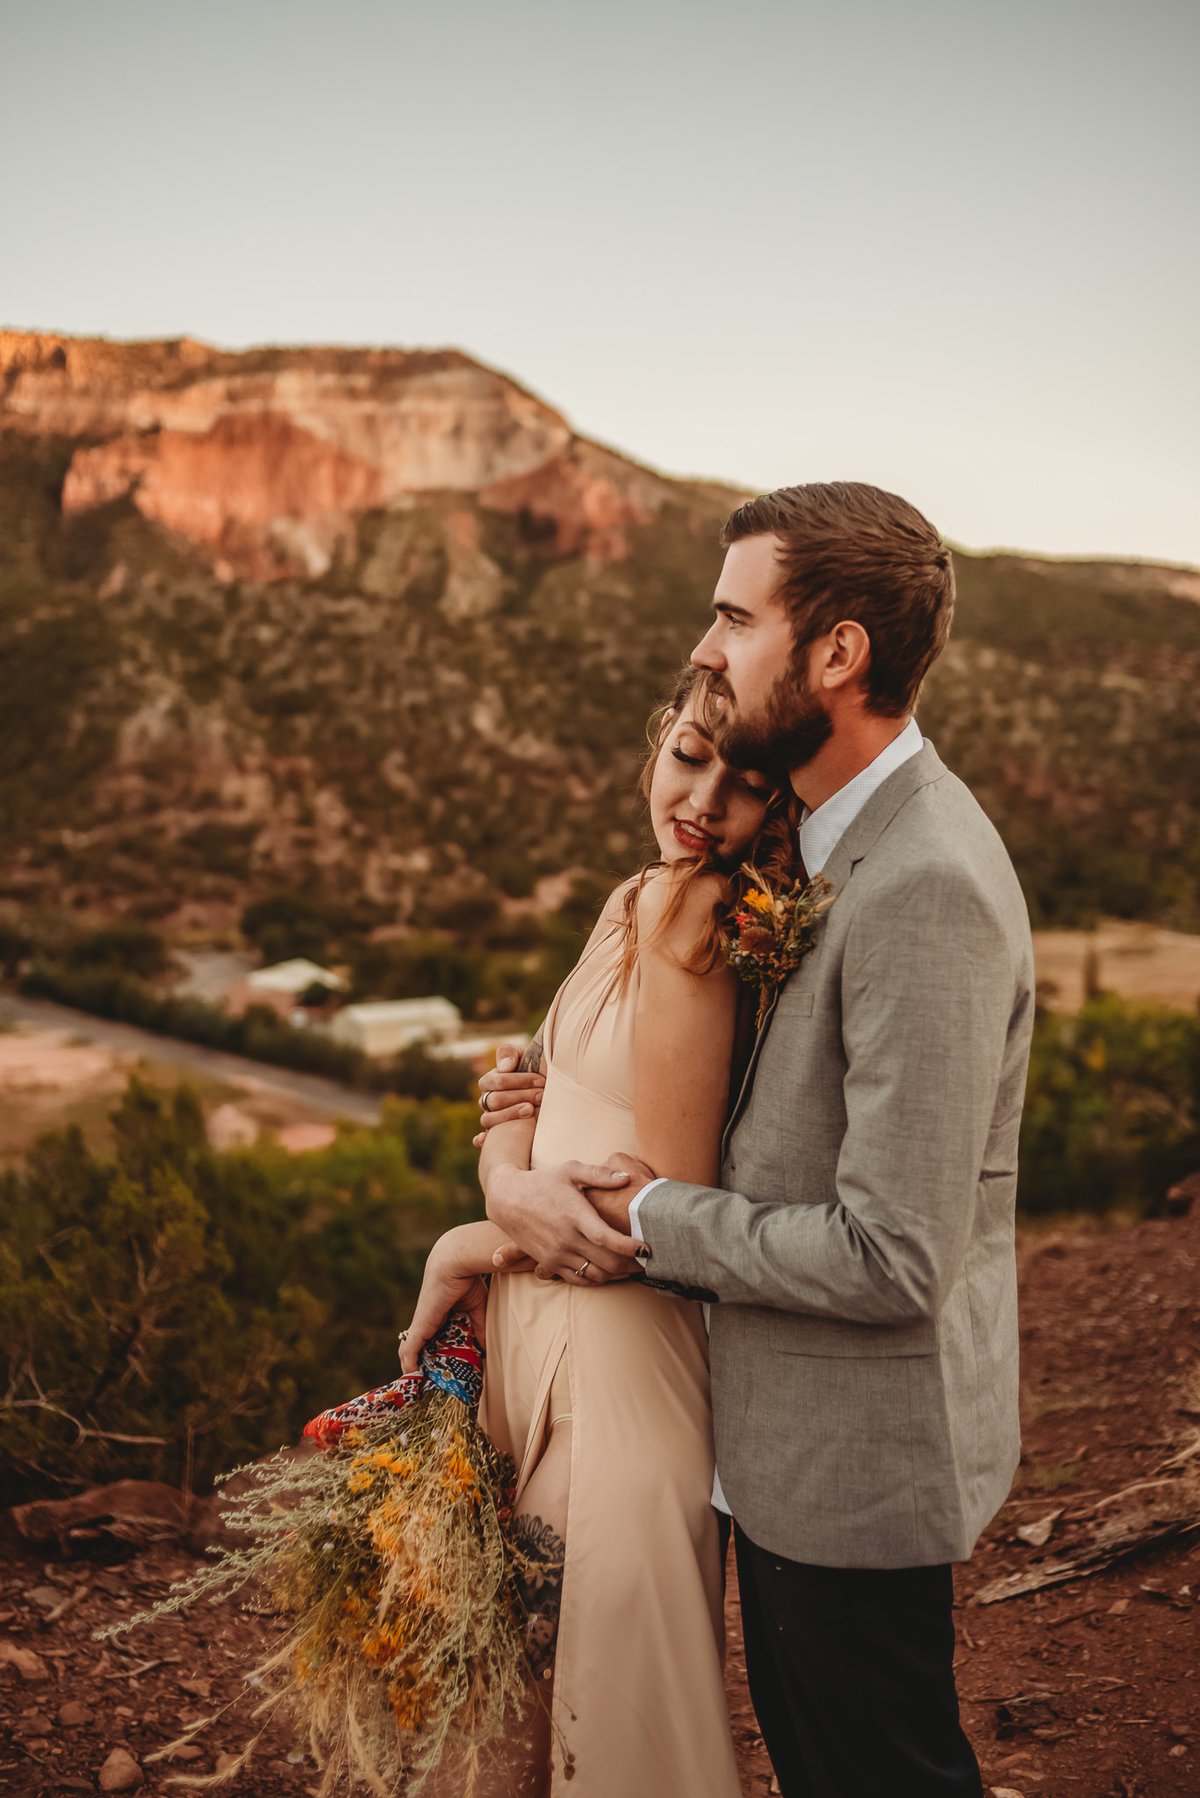 Chels + Alex_Jemez Springs New Mexico Elopement_Sneak Peek_Treolo Photography-2